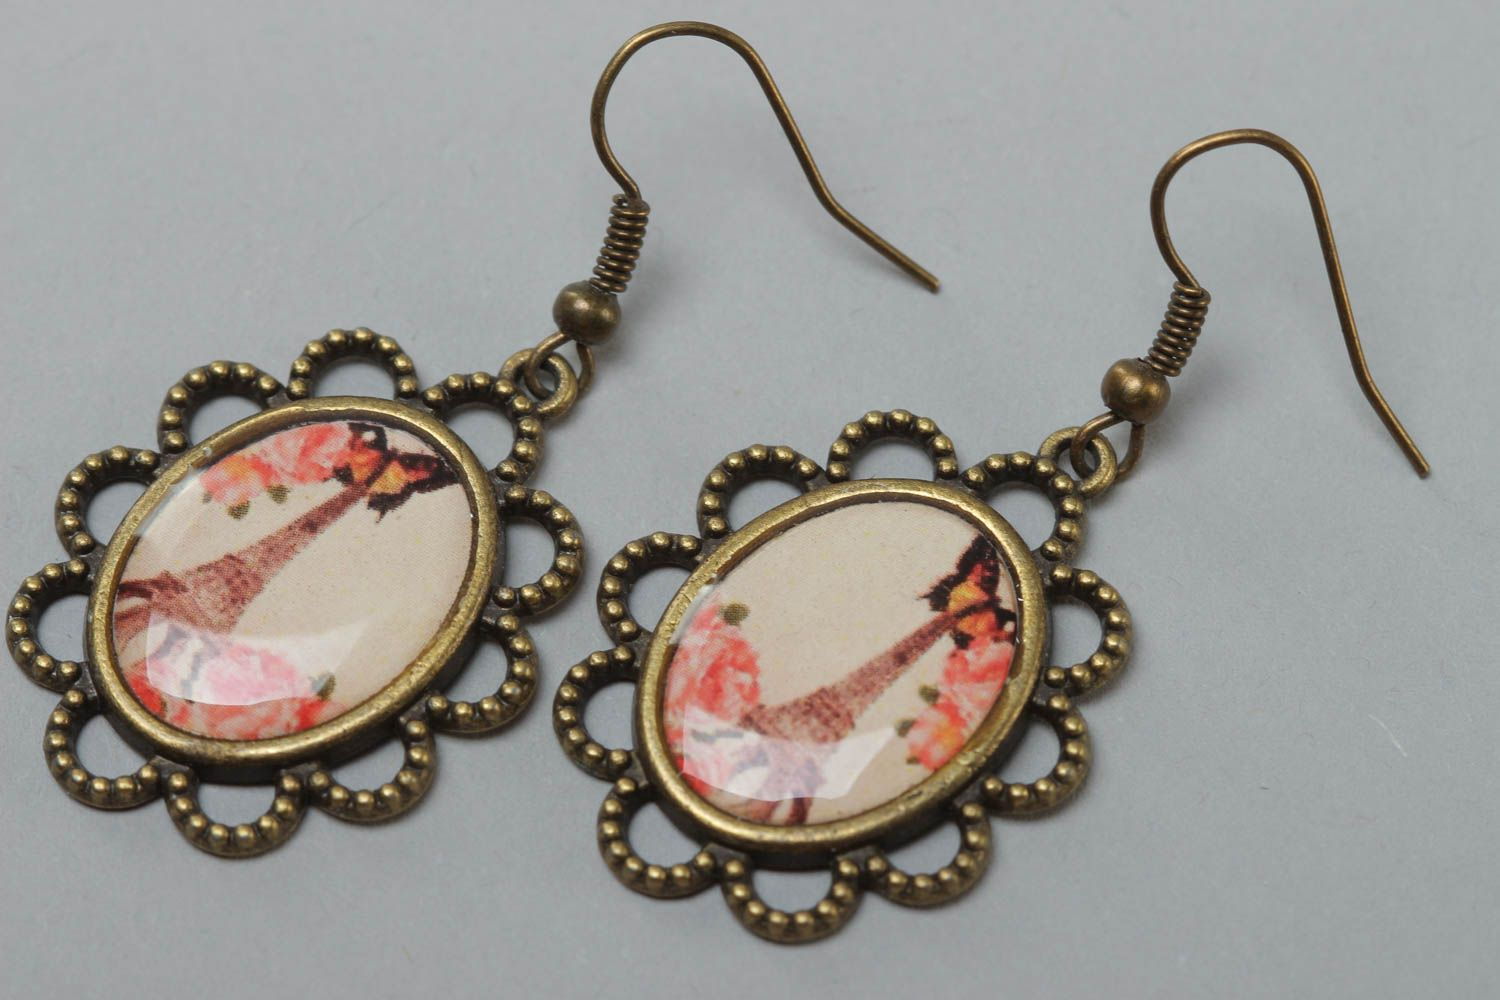 Handmade vintage oval earrings made of metal and glass glaze with a print of Eiffel tower photo 2